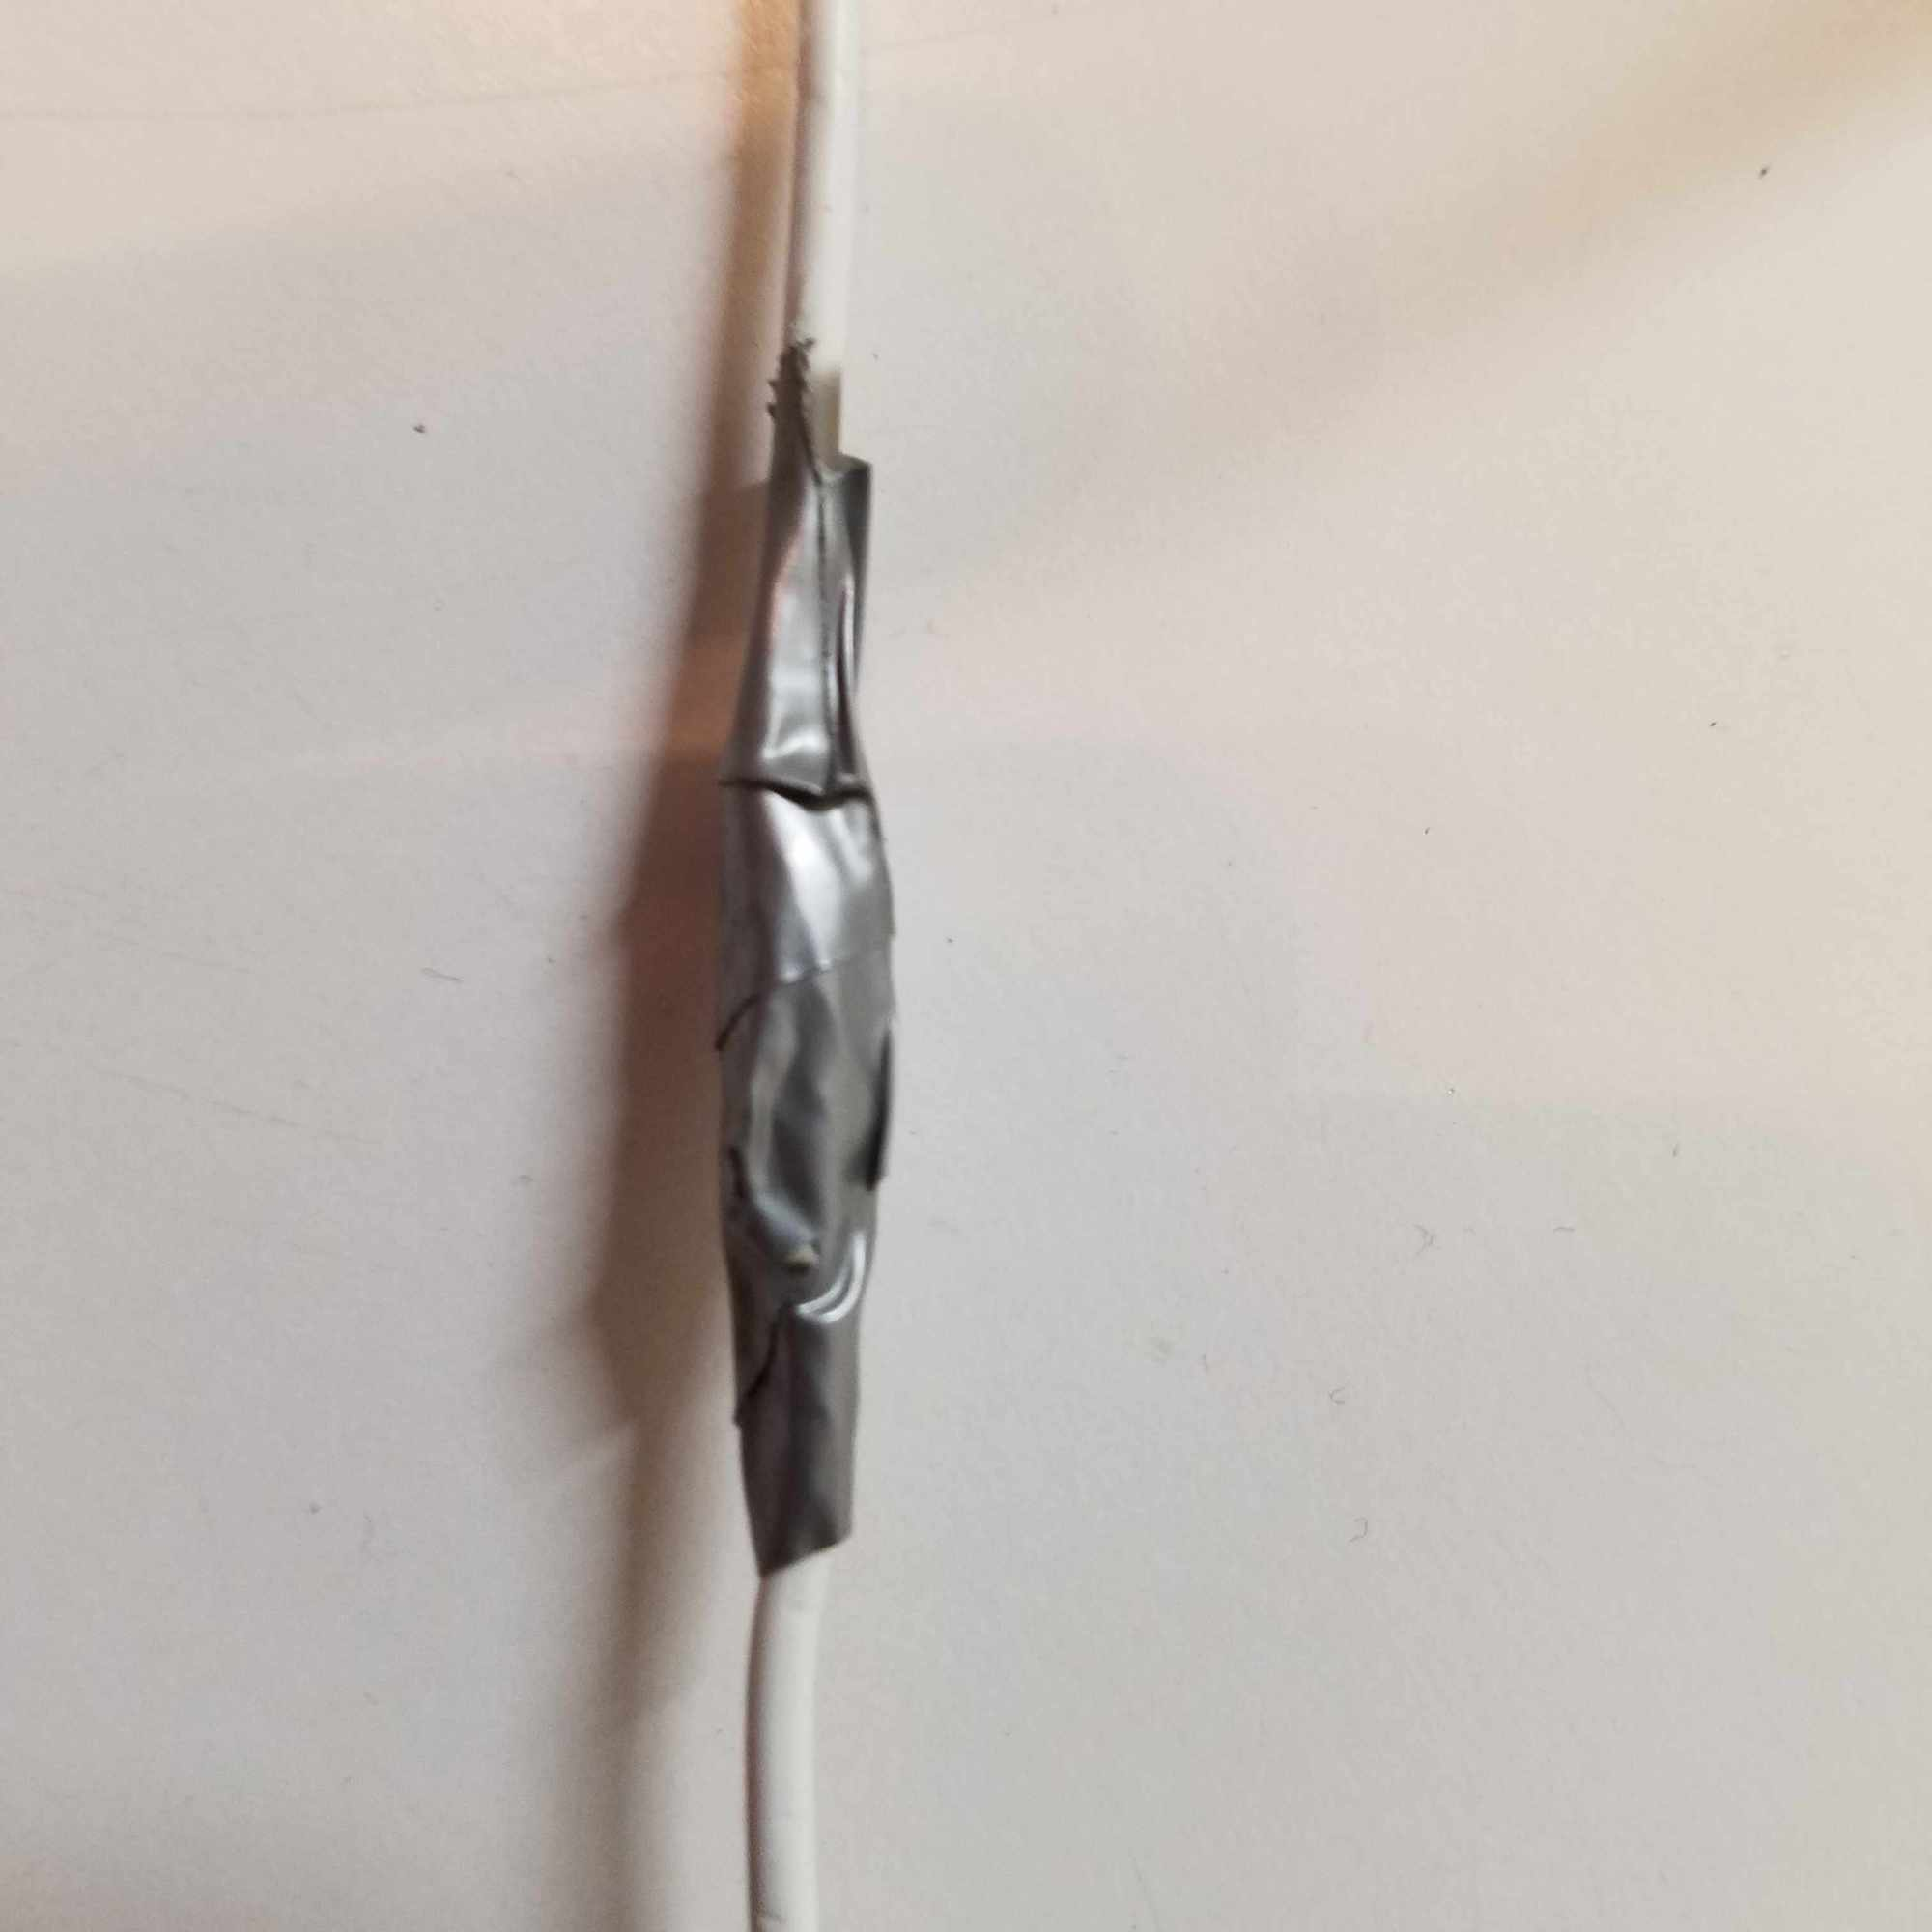 hight resolution of once all of the wires are connected tightly wrap the exposed area in electrical tape